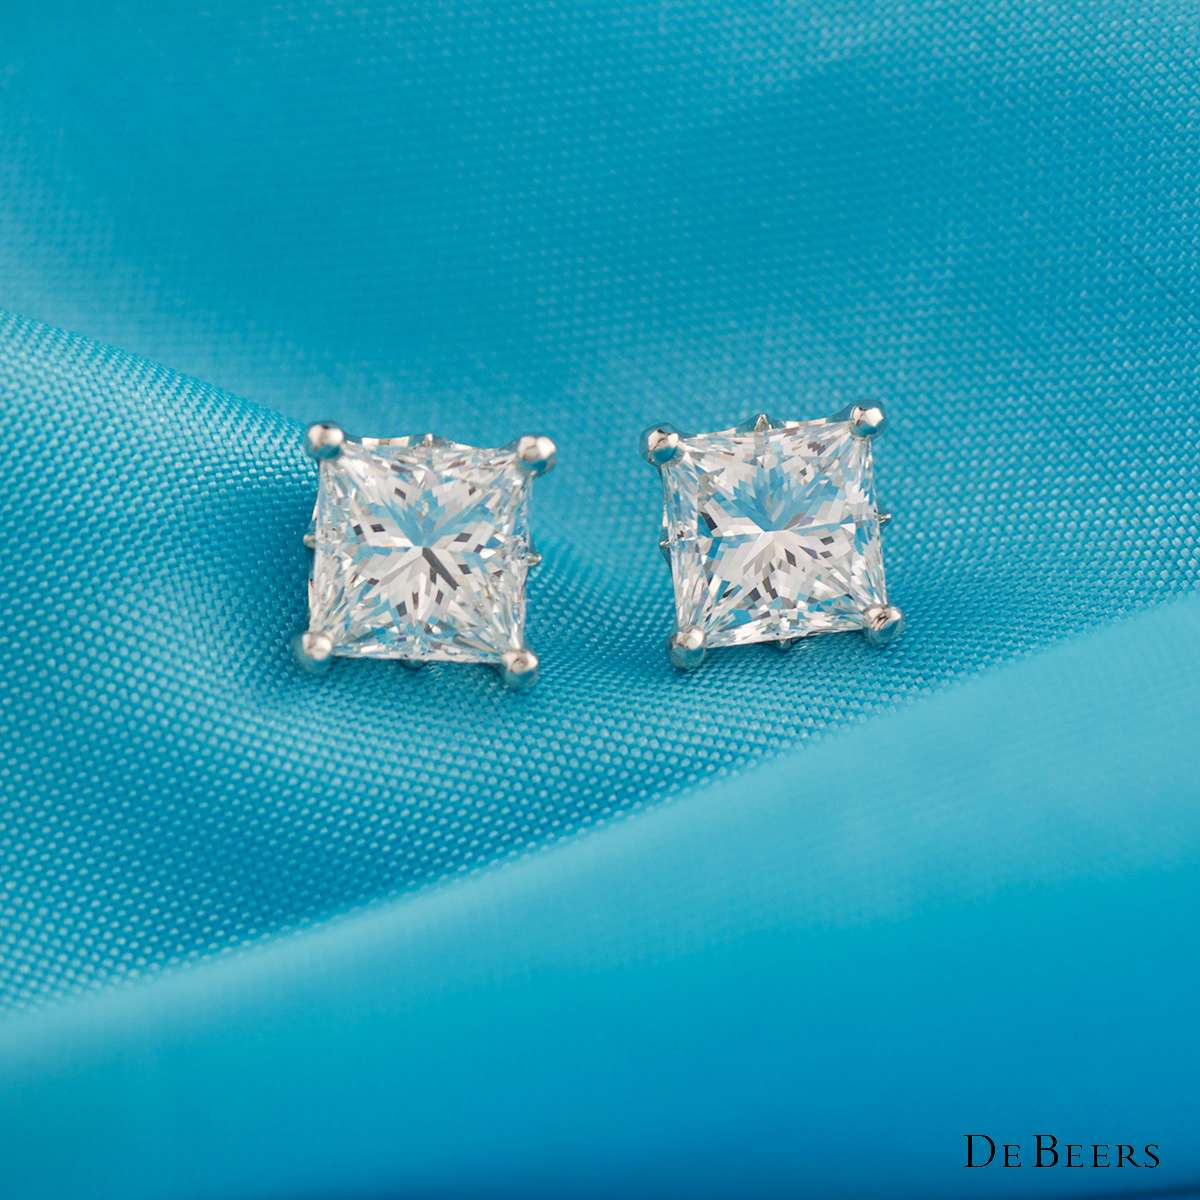 c6d30ebcf De Beers Diamond Platinum Princess Cut Earrings 2.04ct F/VVS1